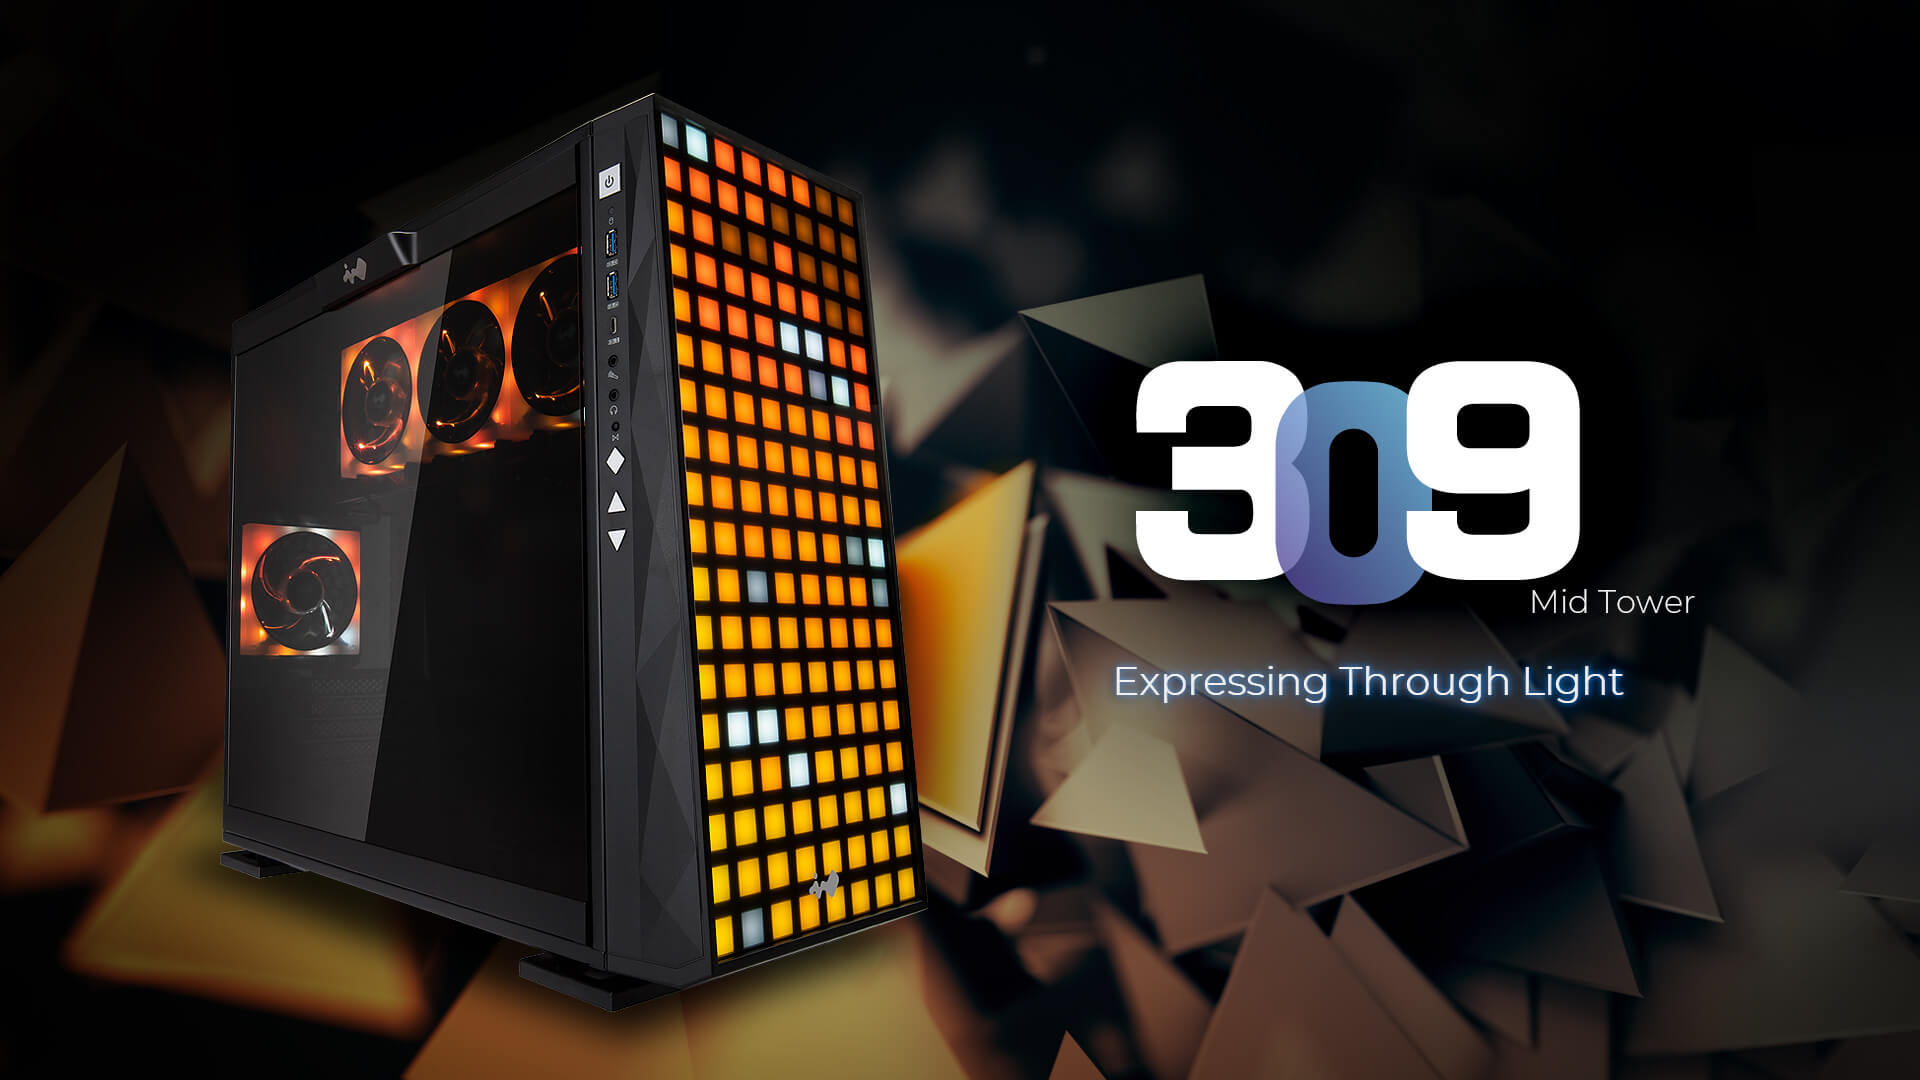 The InWin 309 Mid Tower Case Is Finally Here And Features A Revamped Lighting System And 4 InWin EGO Fans